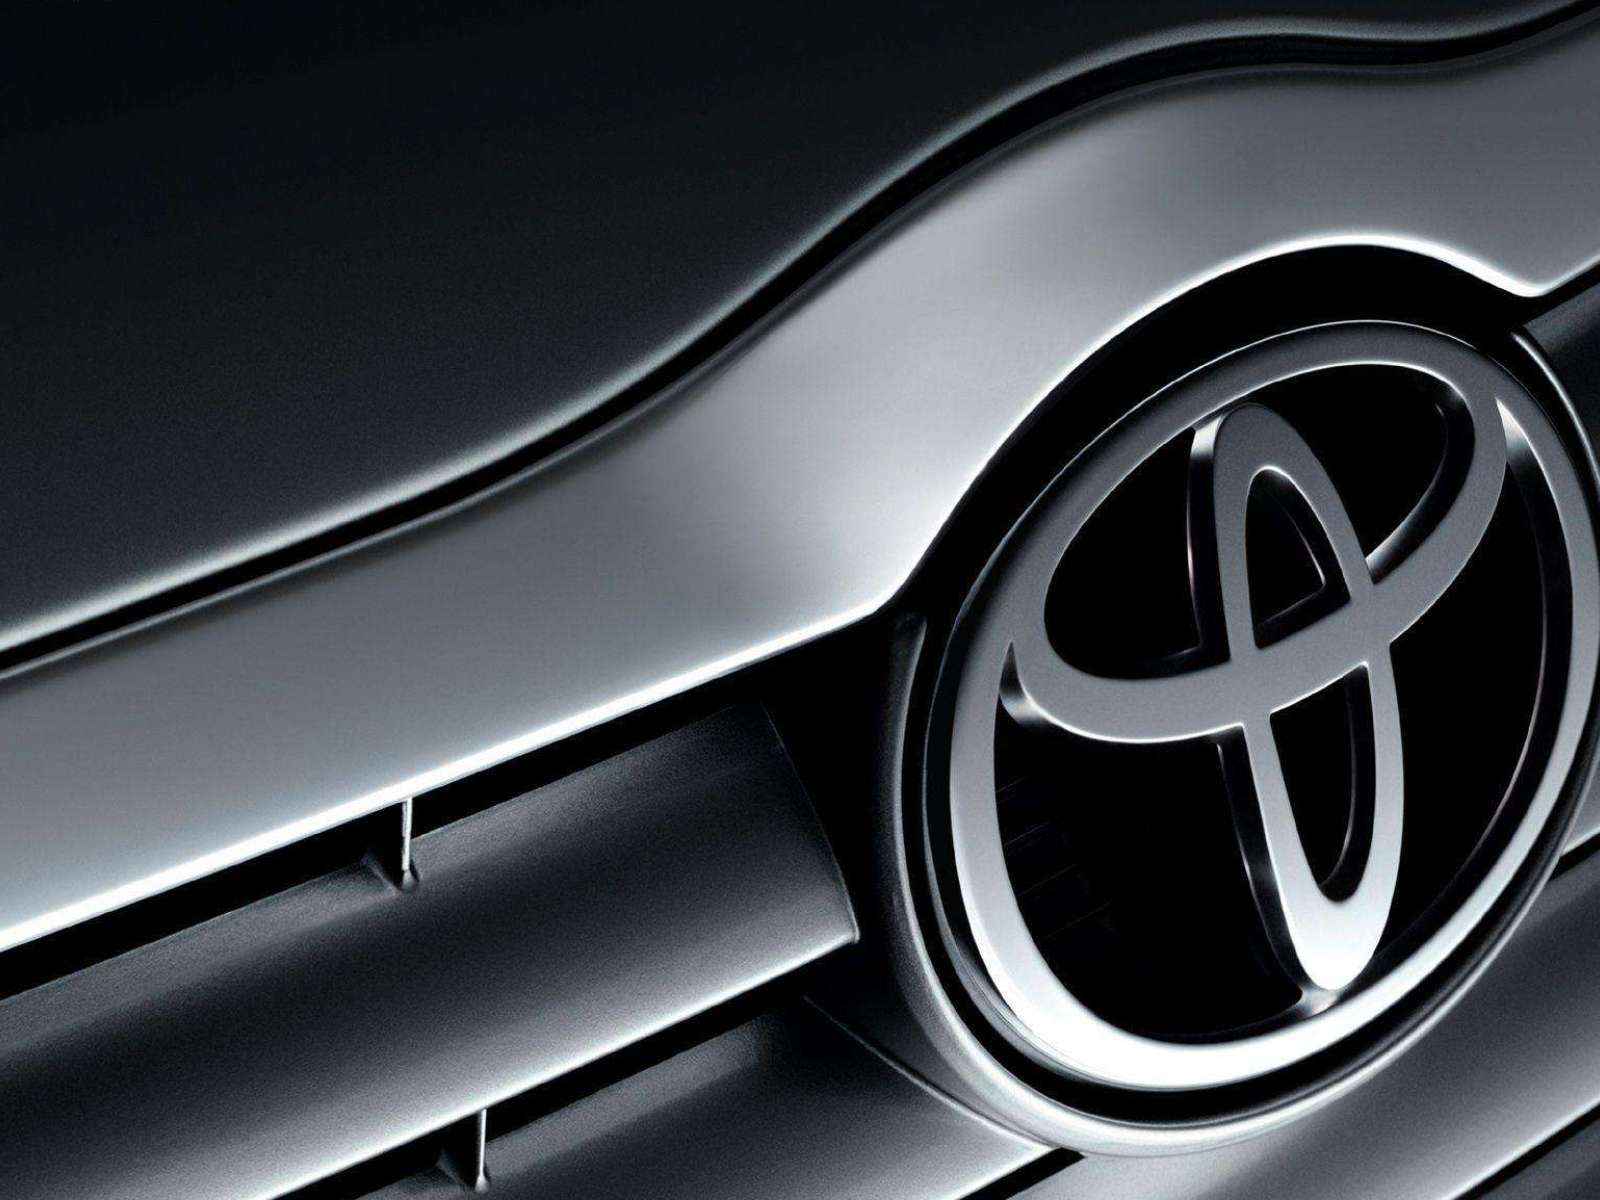 Toyota Grille Logo Wallpaper   Download Wallpaper from 1600x1200